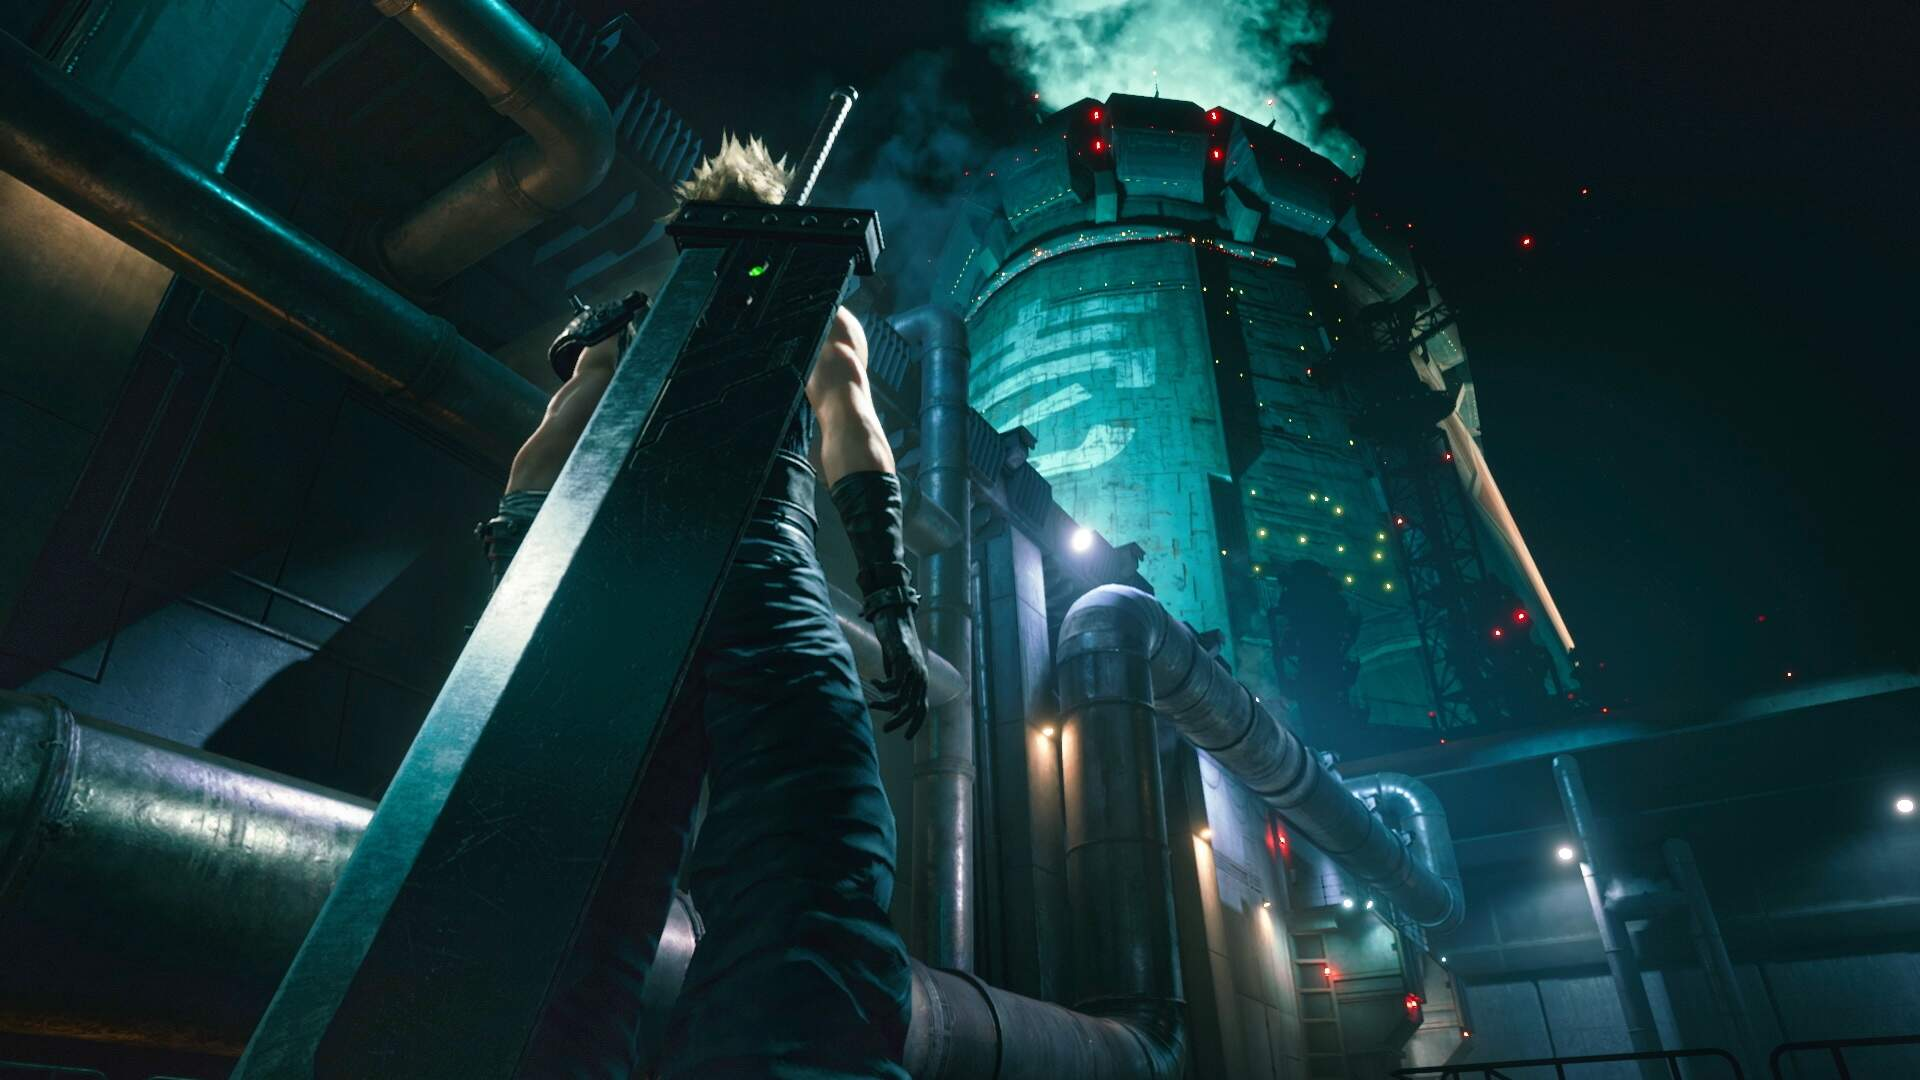 Final Fantasy 7 Remake's Scenario Writer is Sad on Twitter Over Recent Leaks